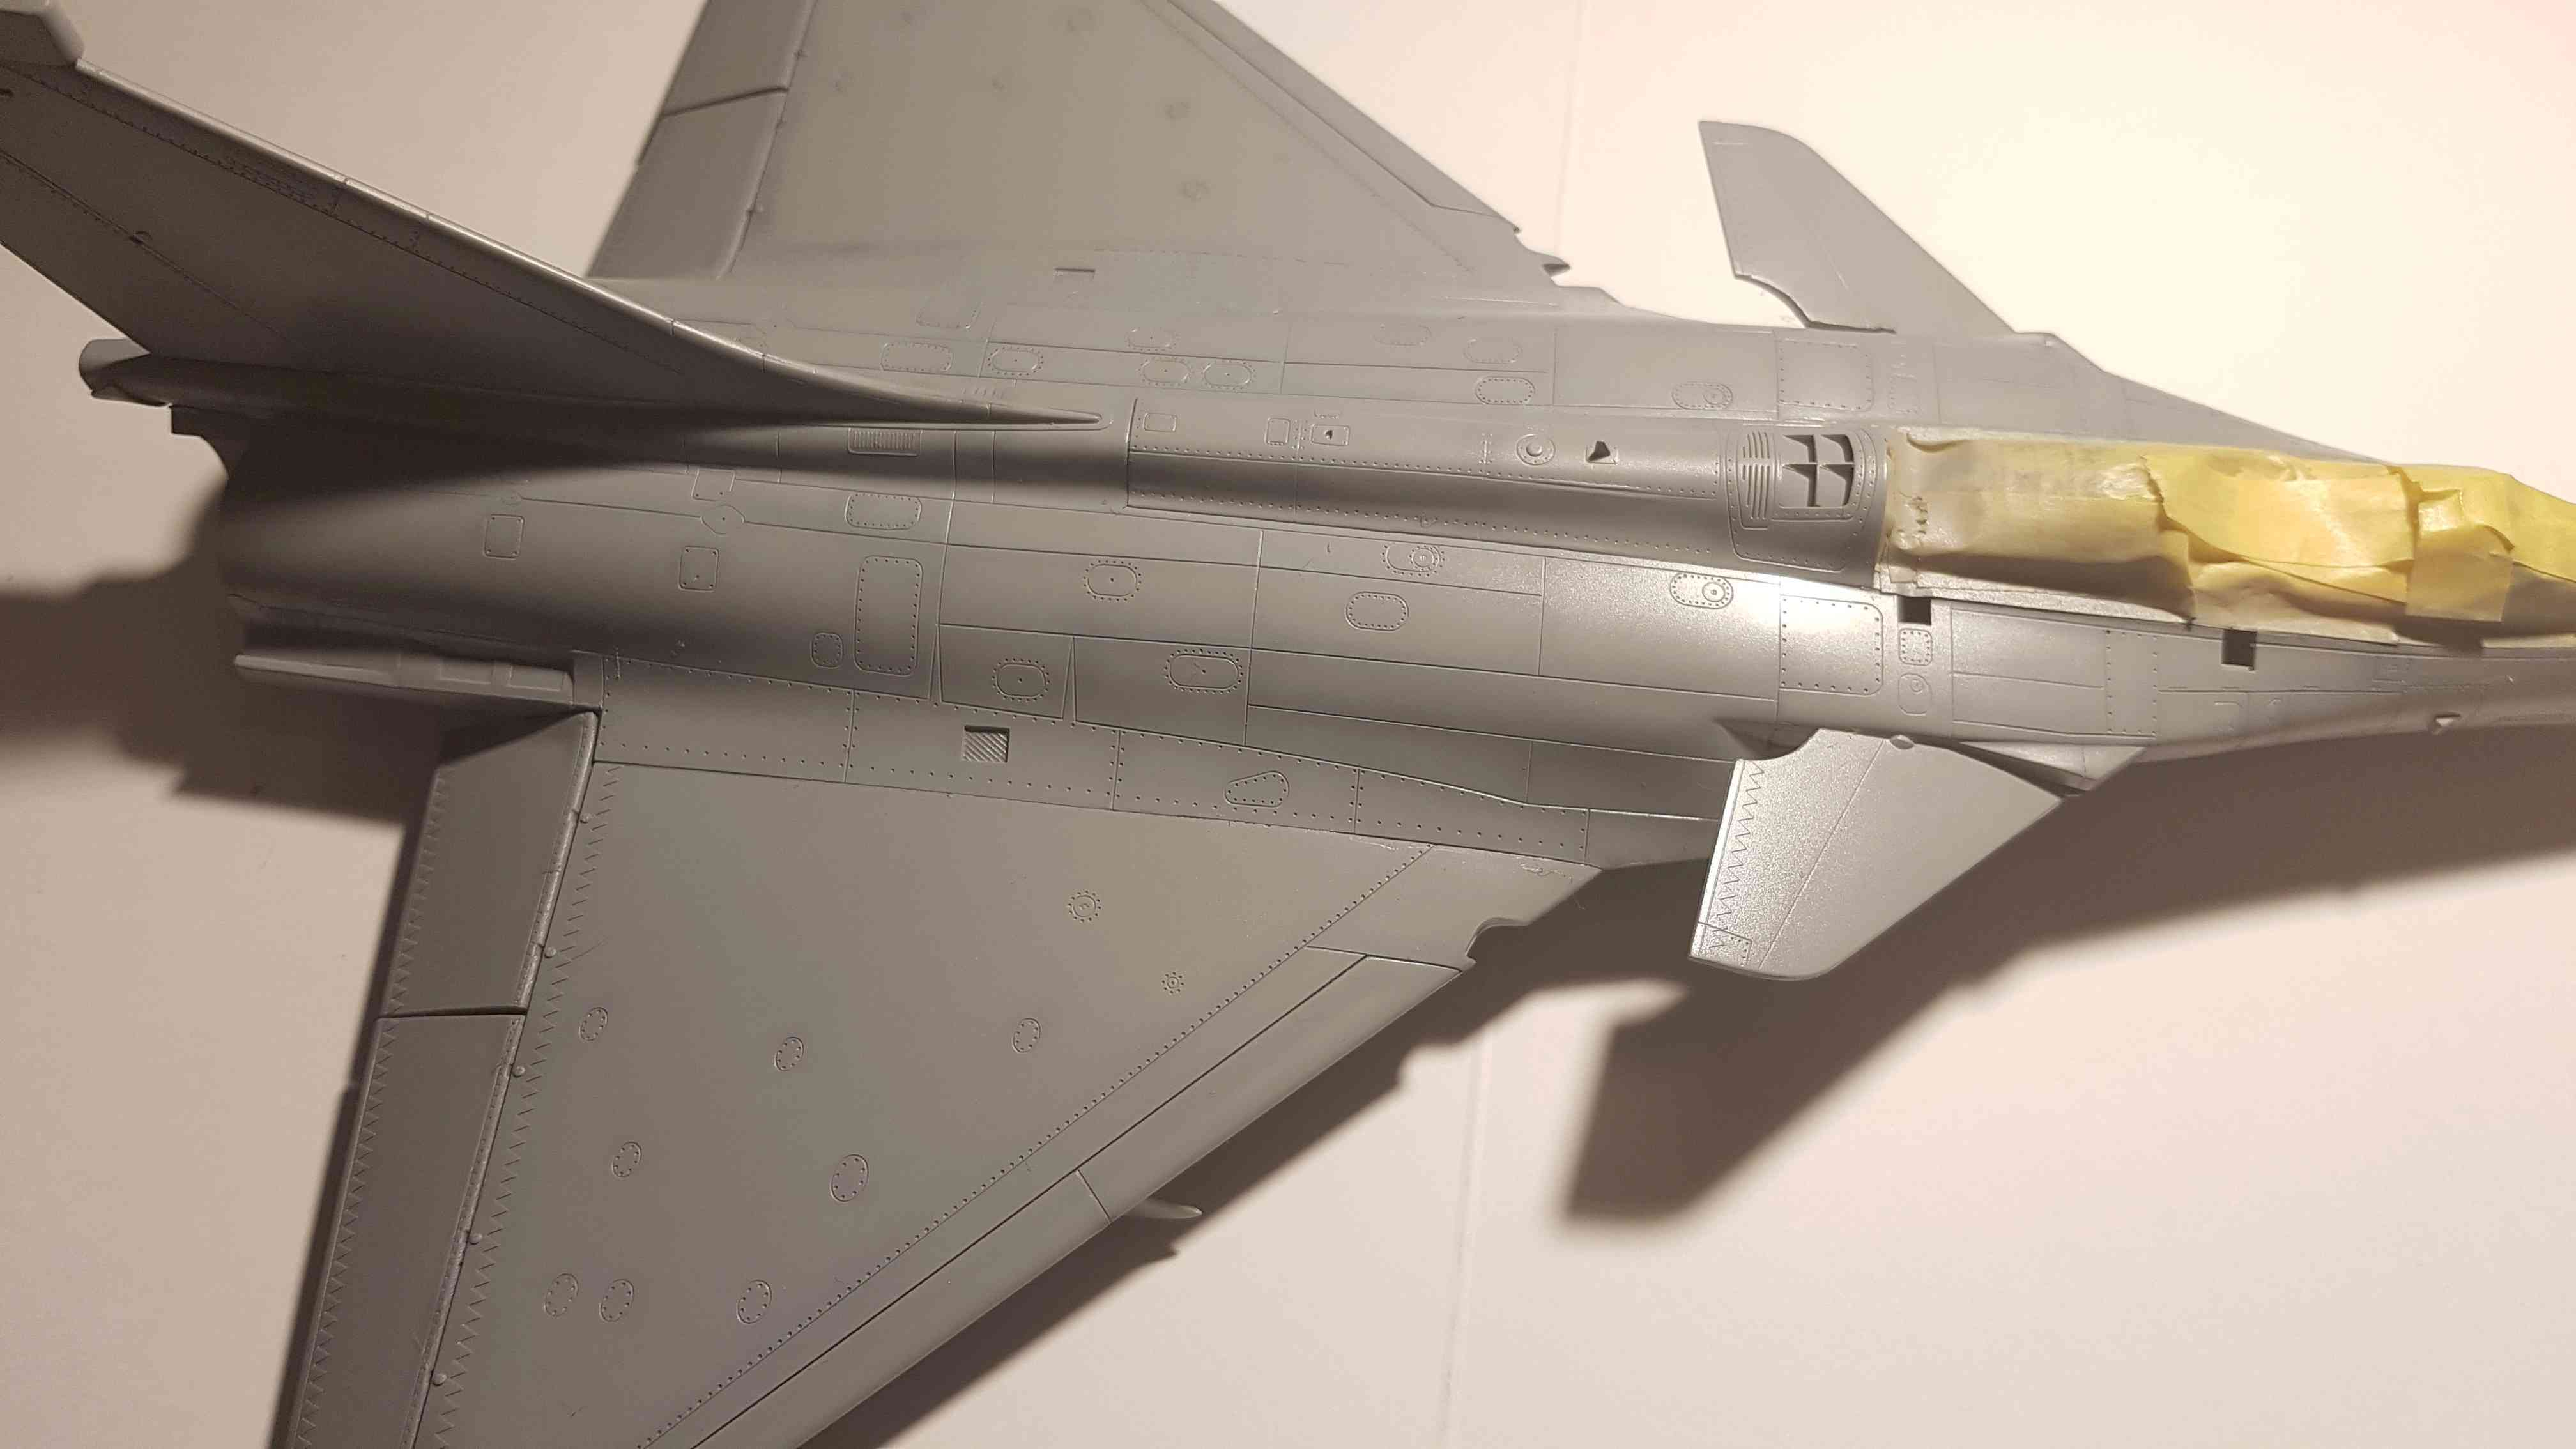 Rafale C 1/48 Revell - Page 3 20181241